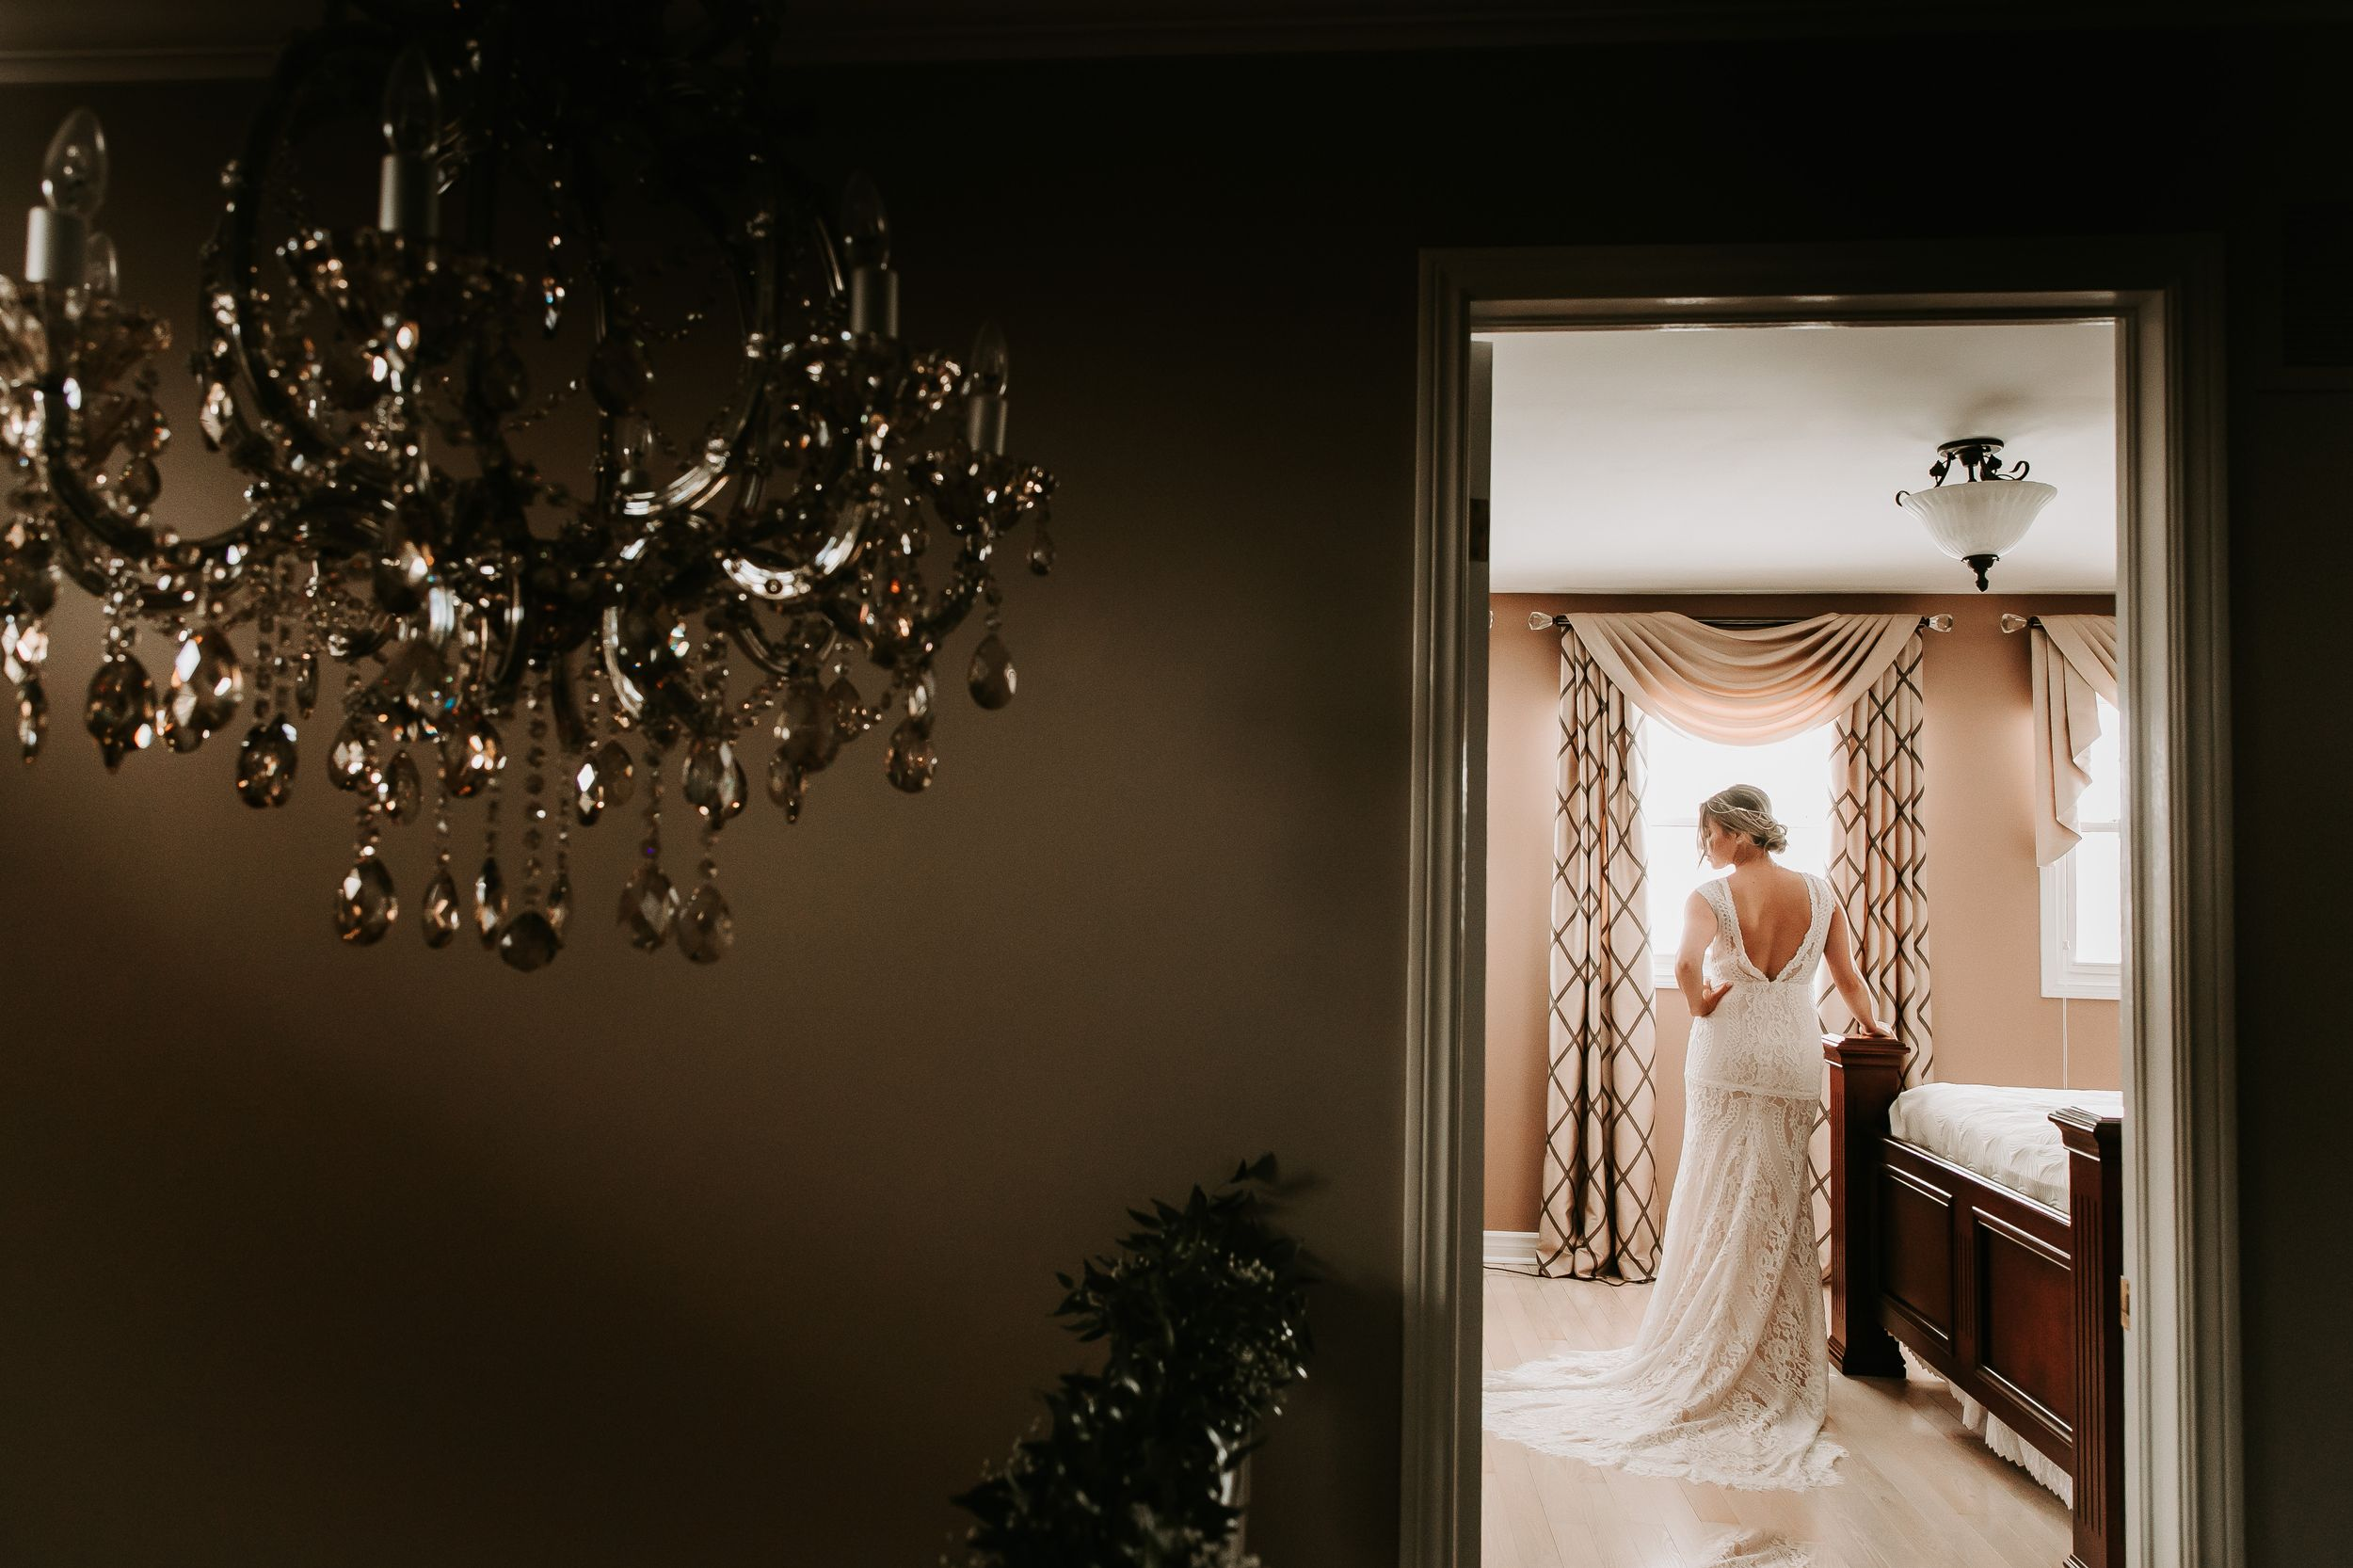 Grand Luxe Event Boutique and Mint Room Studios Toronto Wedding Photos by Shawn Van Daele